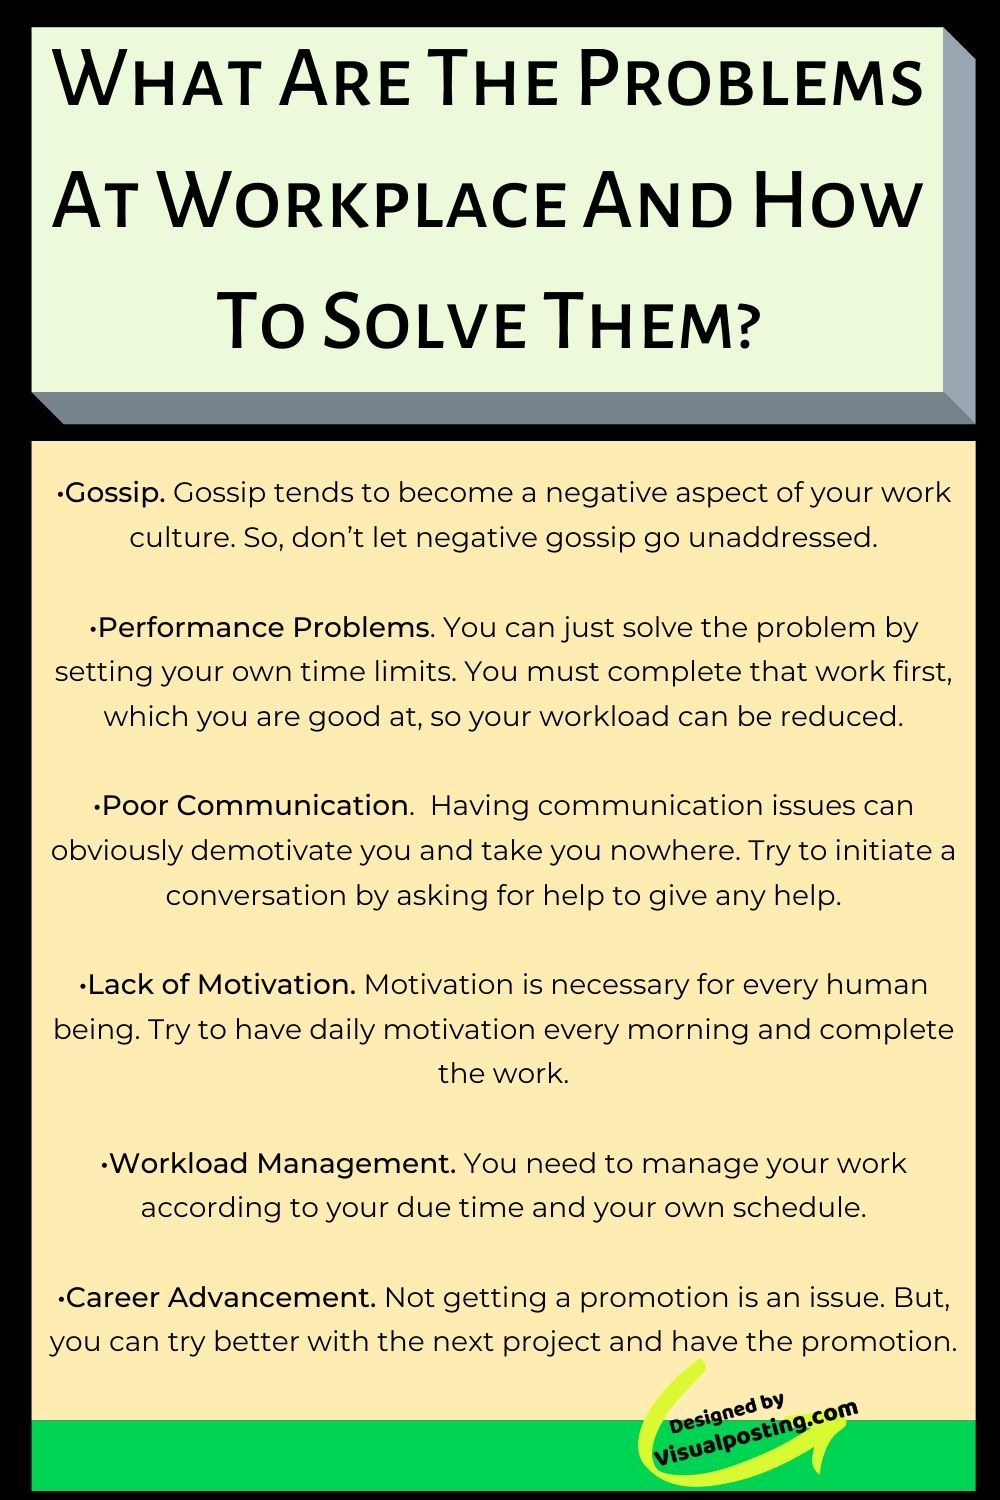 What Are The Problems At The Workplace And How To Solve Them Problem Solving Job Interview Advice Work Quotes Job Interview Tips